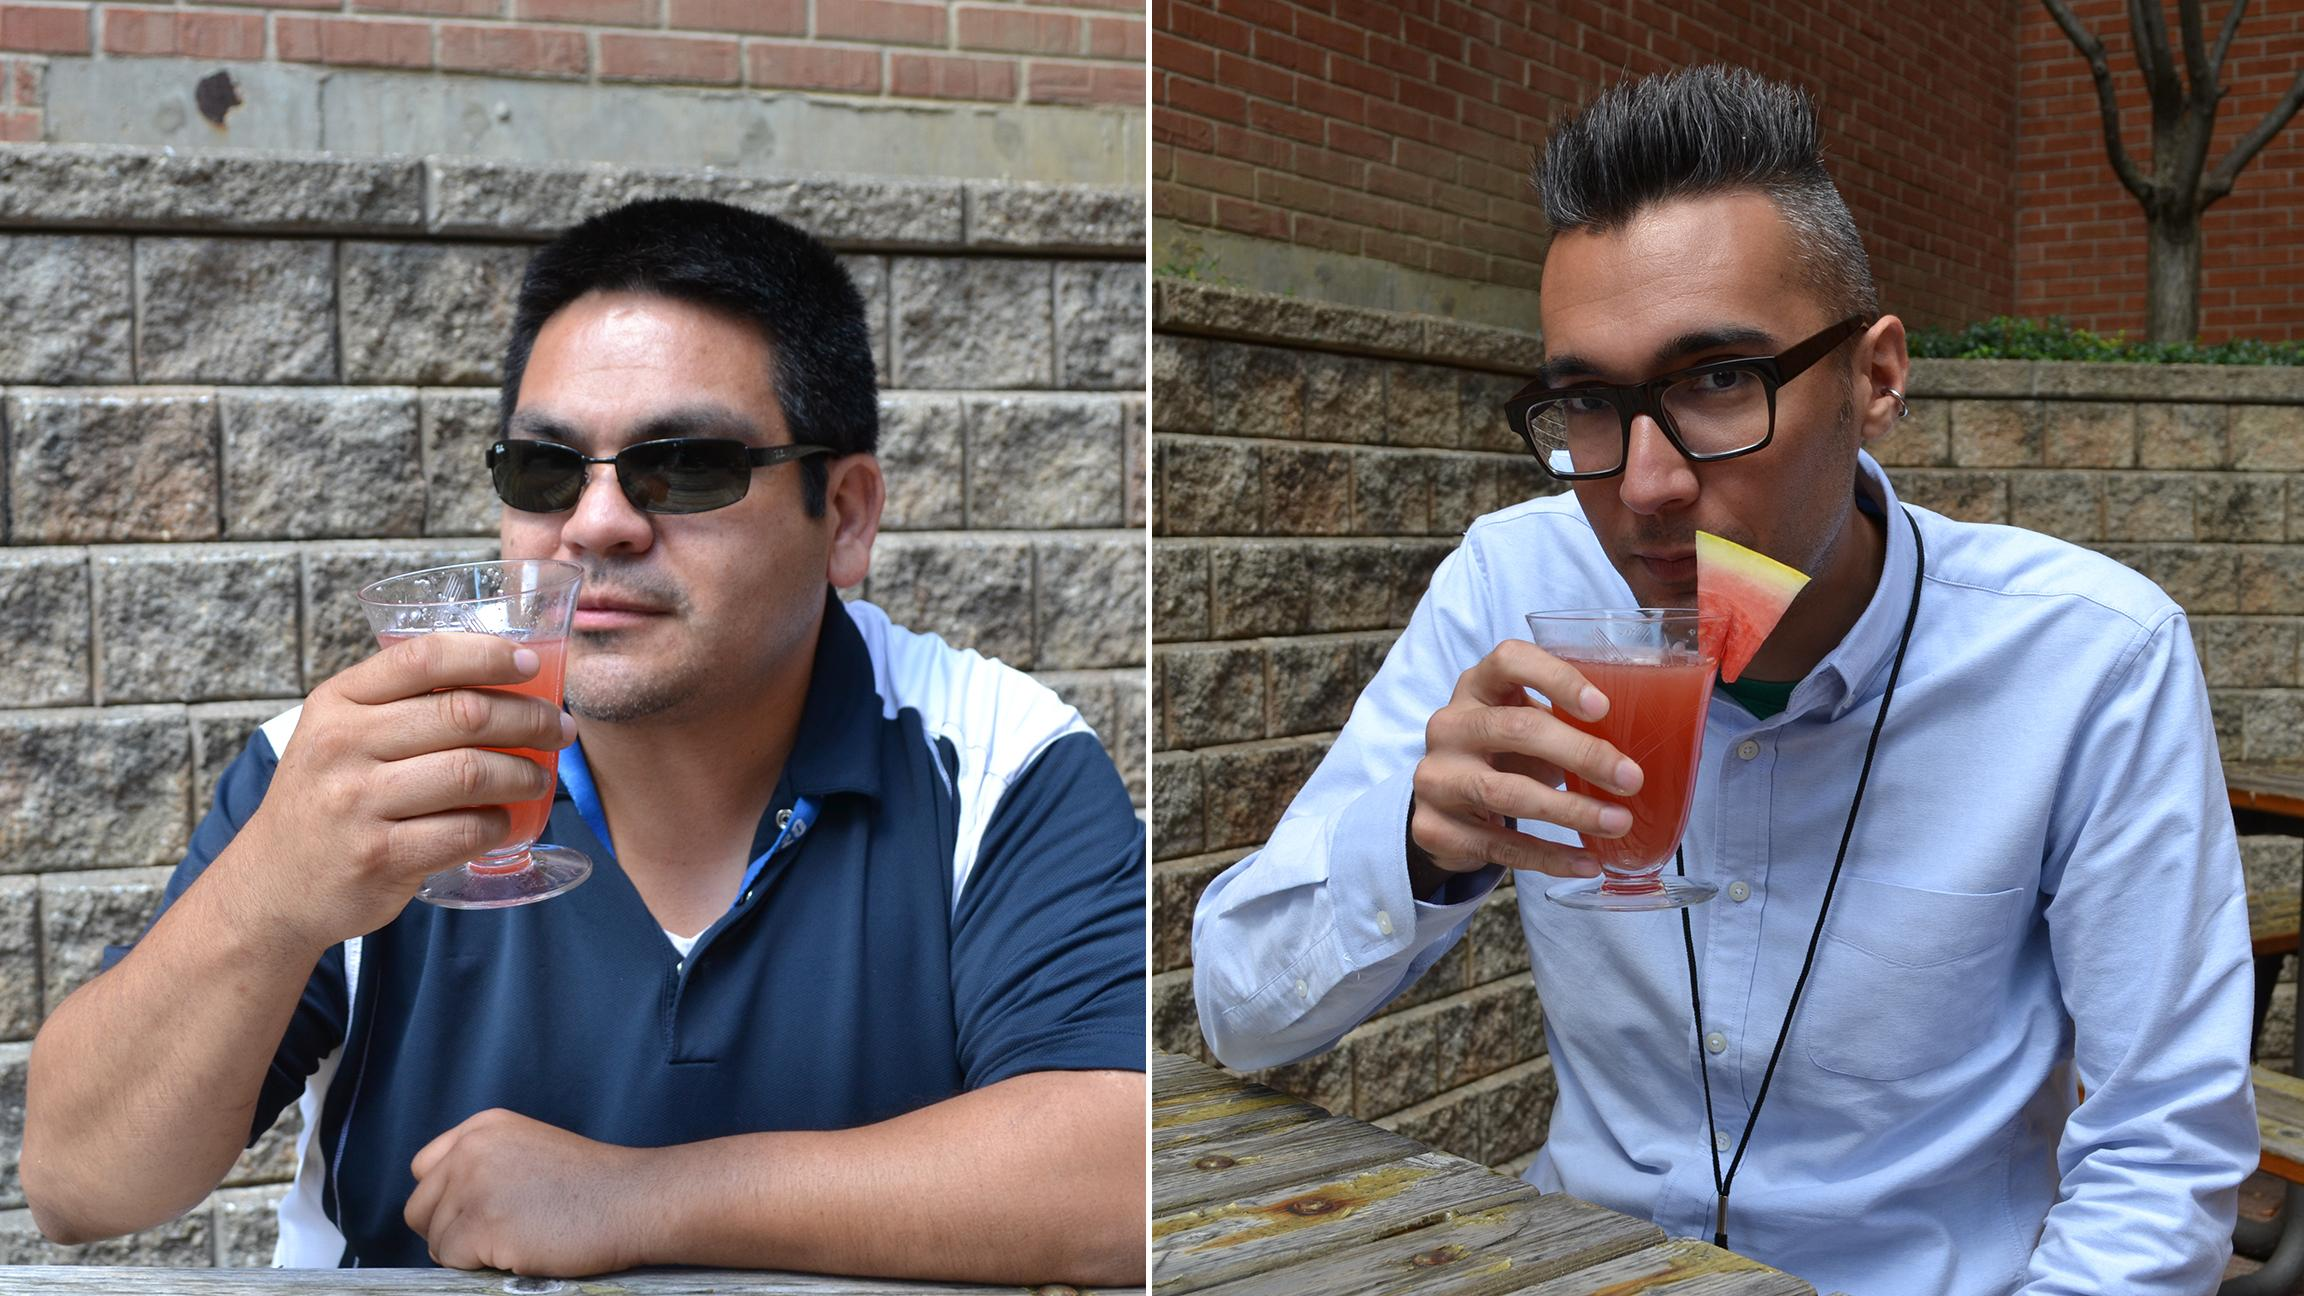 WTTW staffers Juan Carranza, left, and Hunter Clauss knock back a Booth One in the sun. (Erica Gunderson / Chicago Tonight)